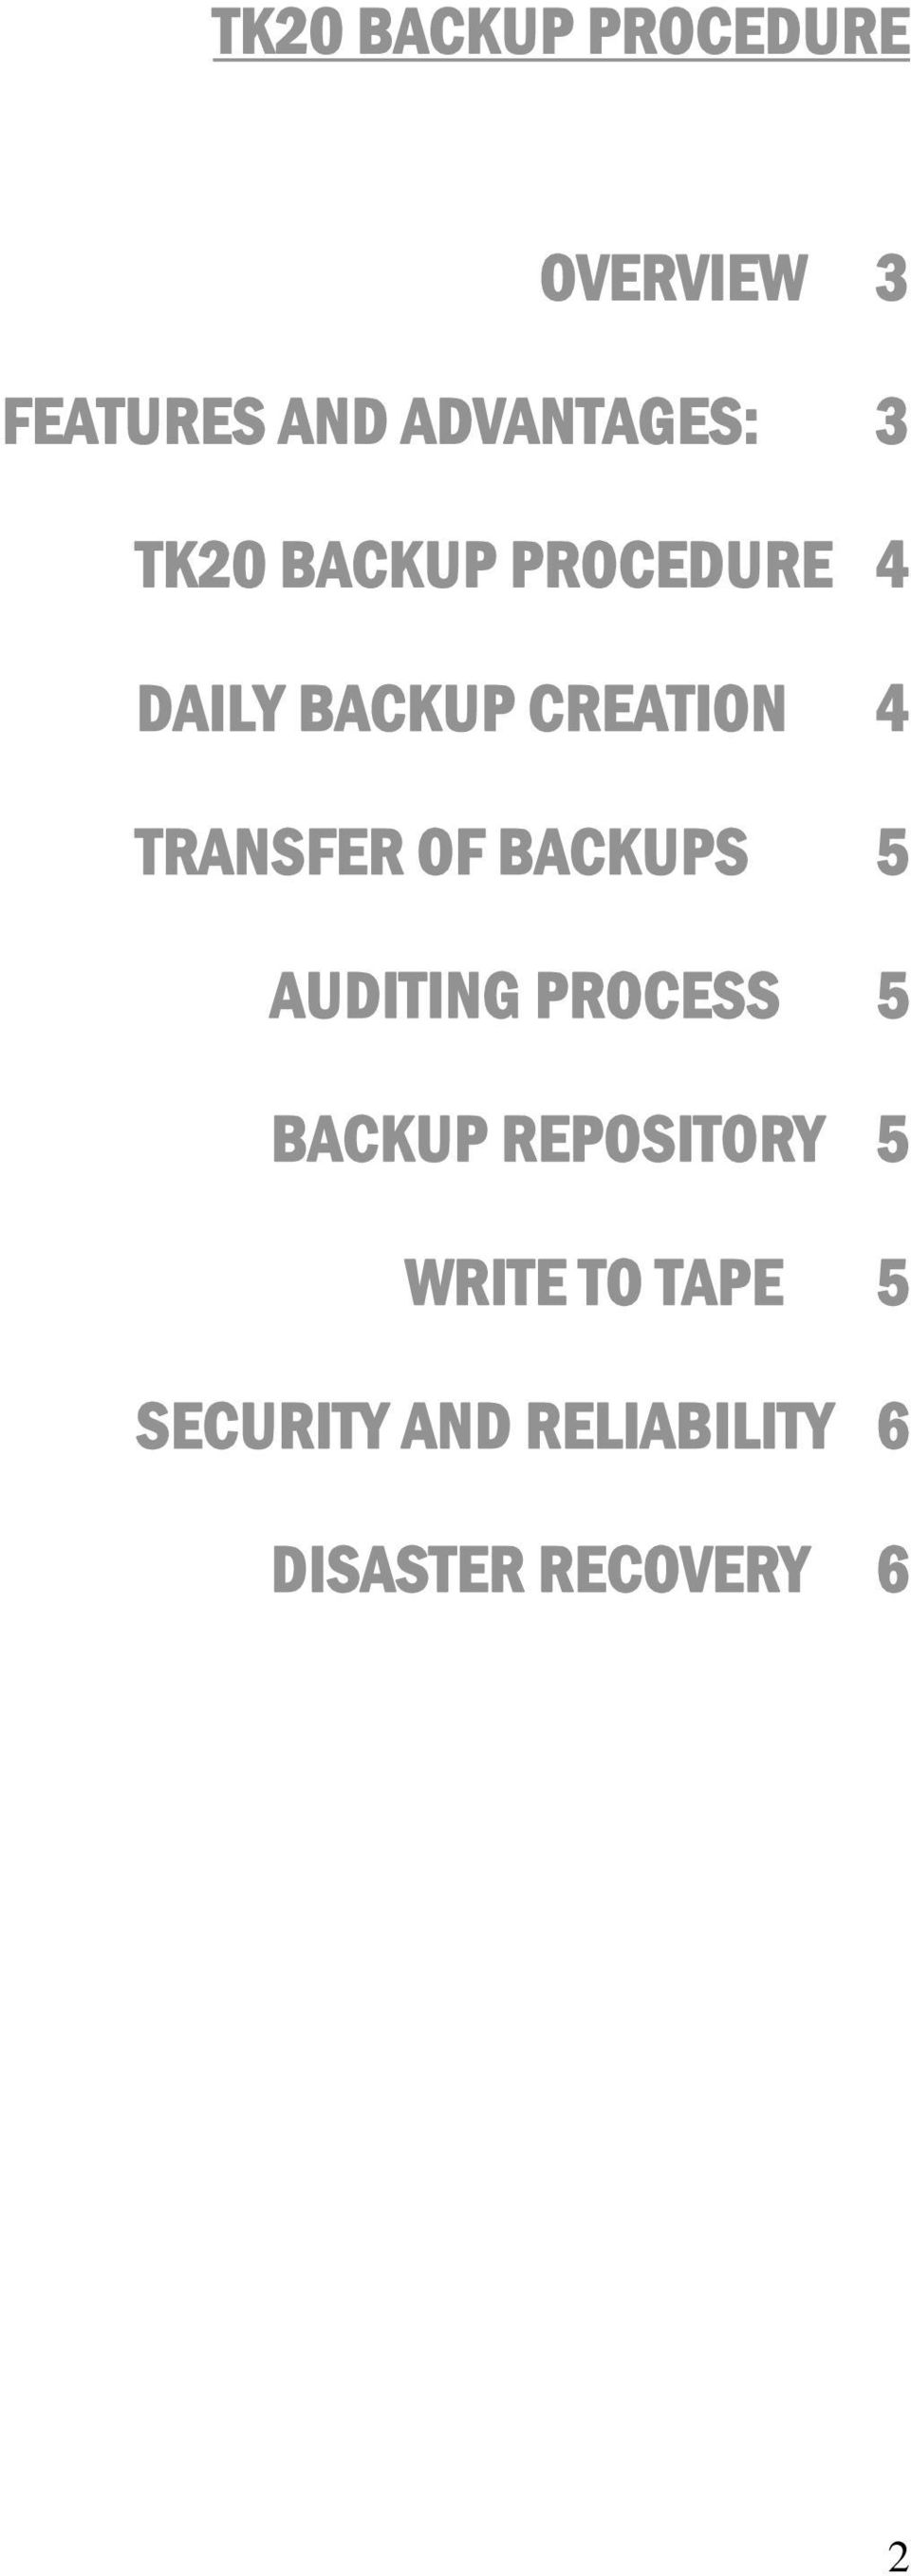 OF BACKUPS 5 AUDITING PROCESS 5 BACKUP REPOSITORY 5 WRITE